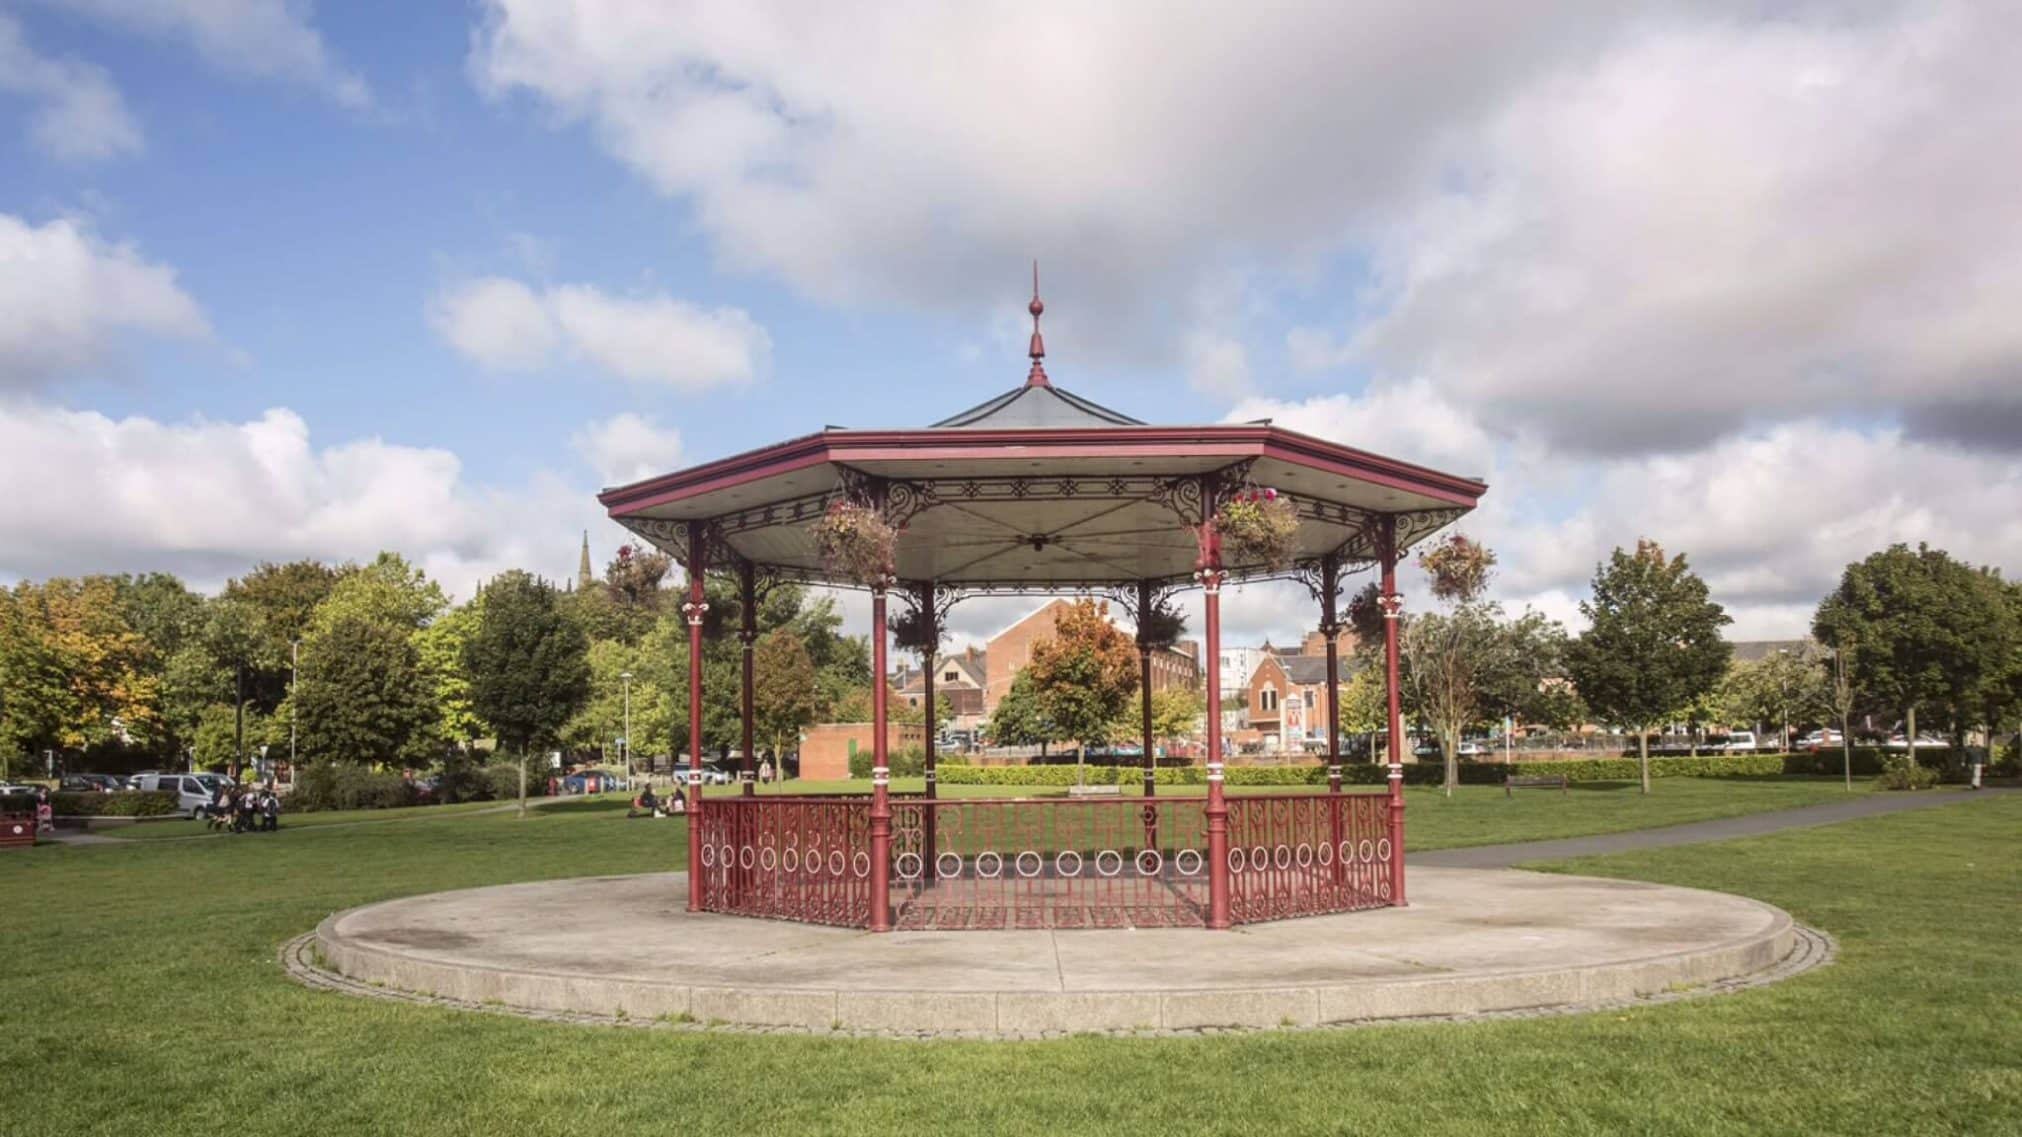 Ormskirk's bandstand in Coronation Park